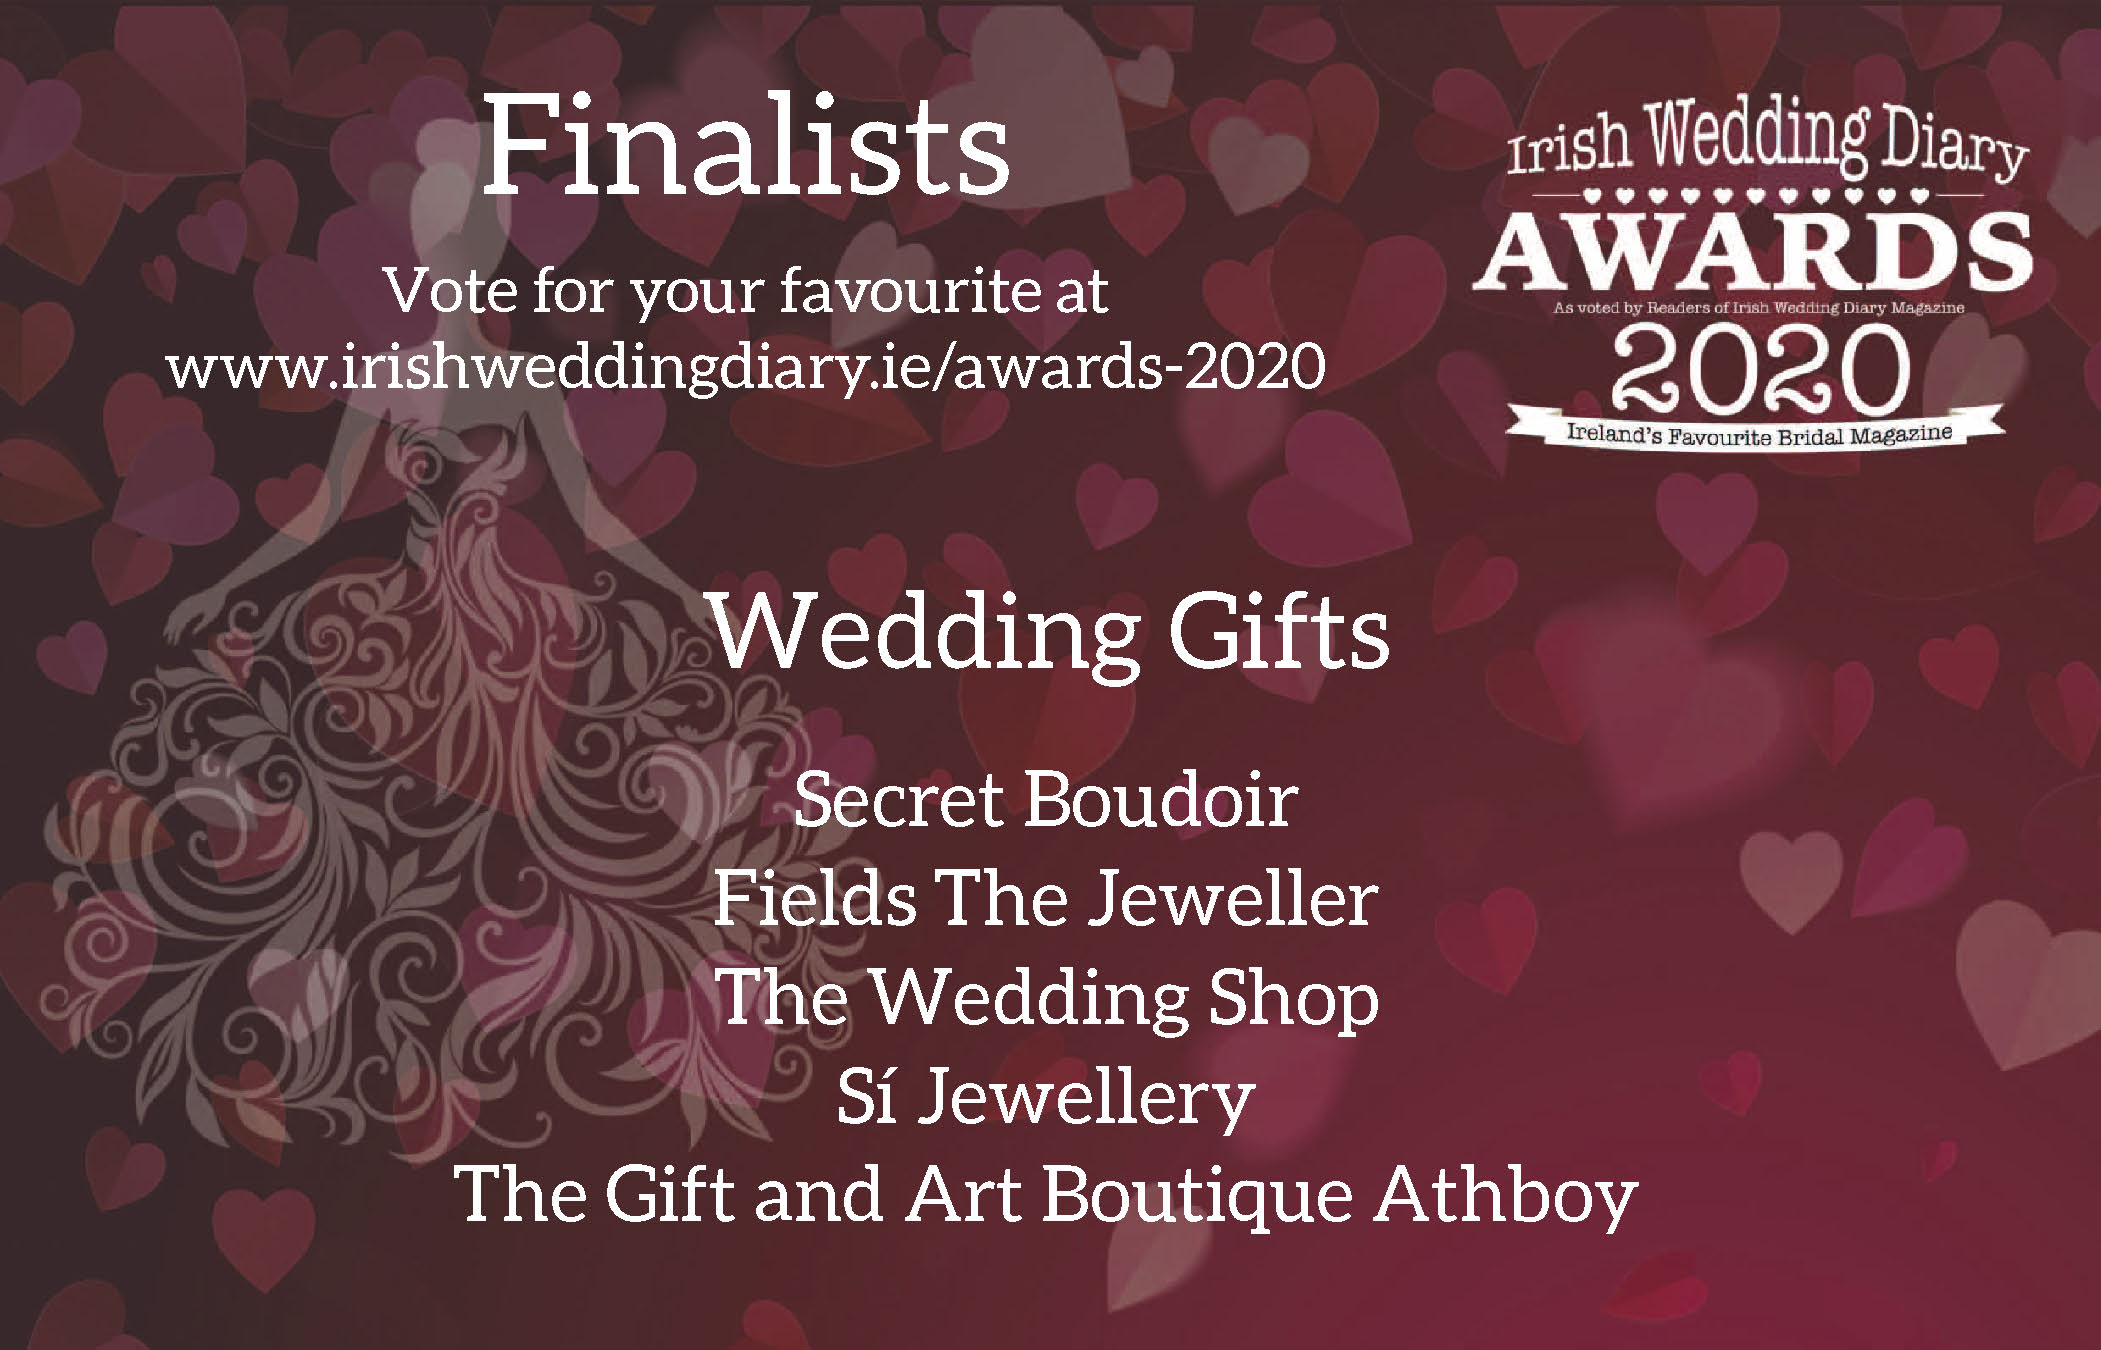 IWD-Awards-Finalists-2020_Wedding-Gifts